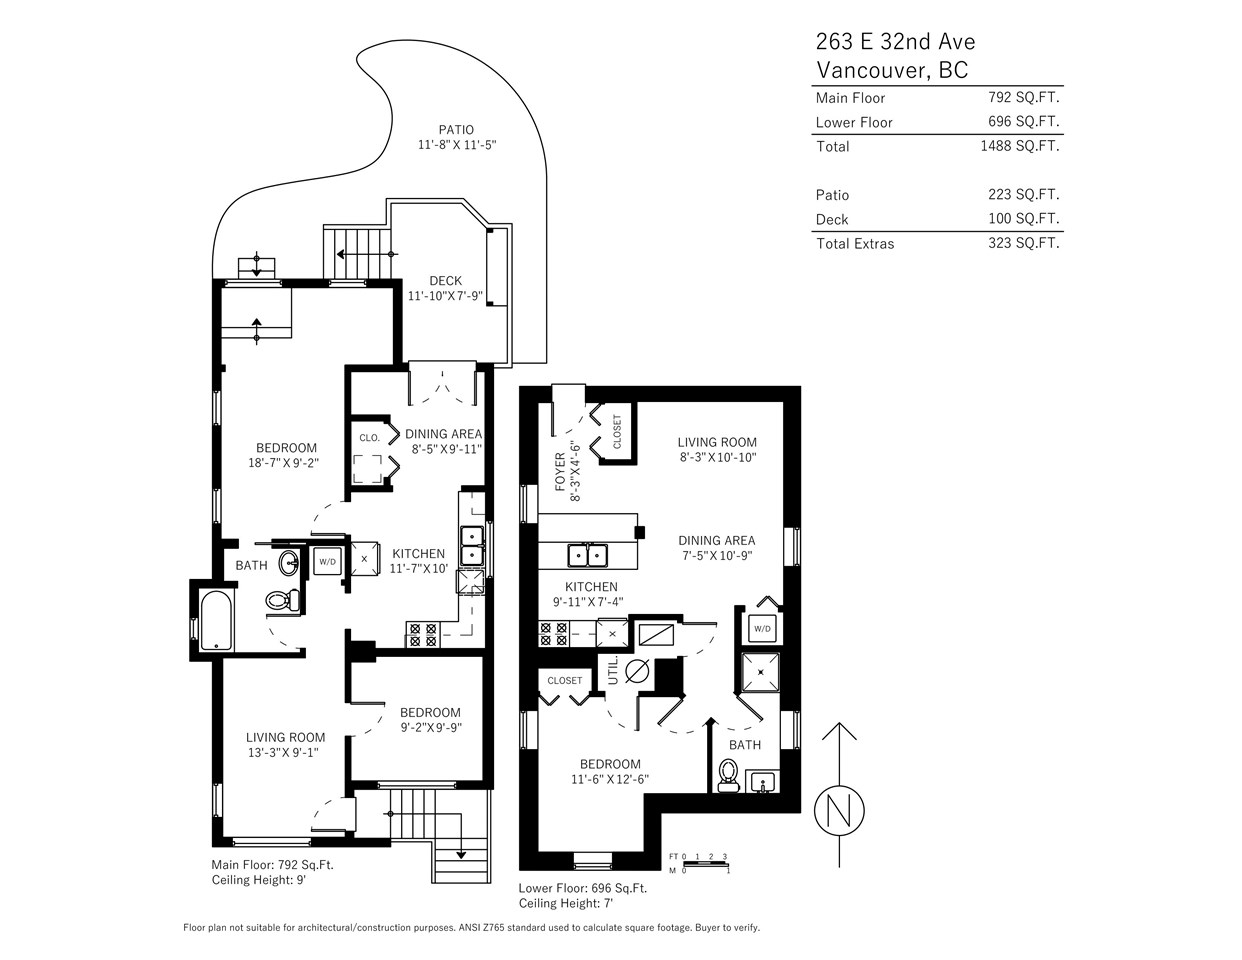 medium resolution of  2 for sale 263 east 32nd avenue vancouver bc 3 bed 2